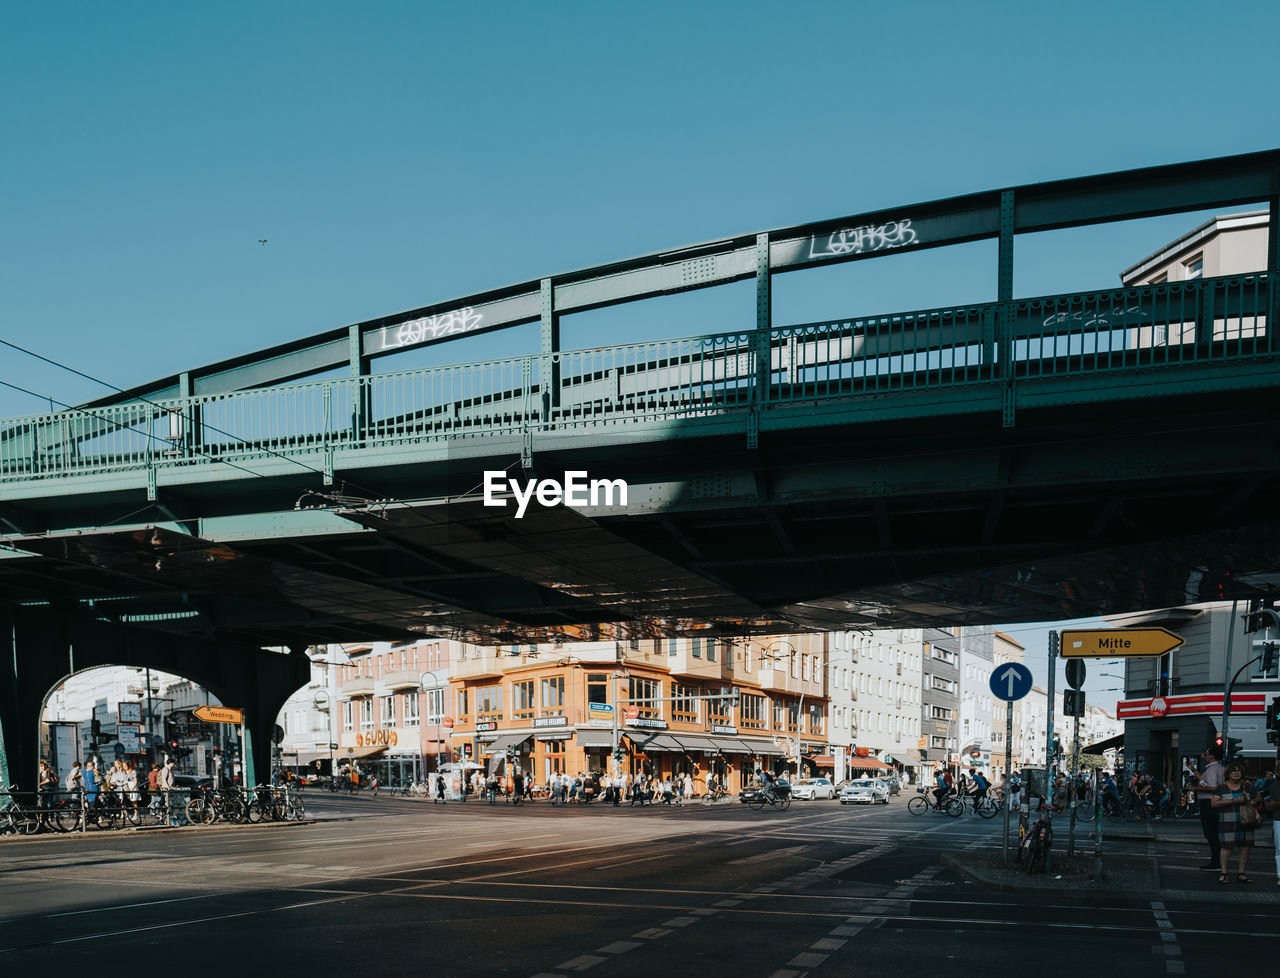 built structure, architecture, transportation, sky, group of people, building exterior, city, bridge, bridge - man made structure, road, incidental people, nature, clear sky, street, connection, mode of transportation, real people, day, public transportation, rail transportation, outdoors